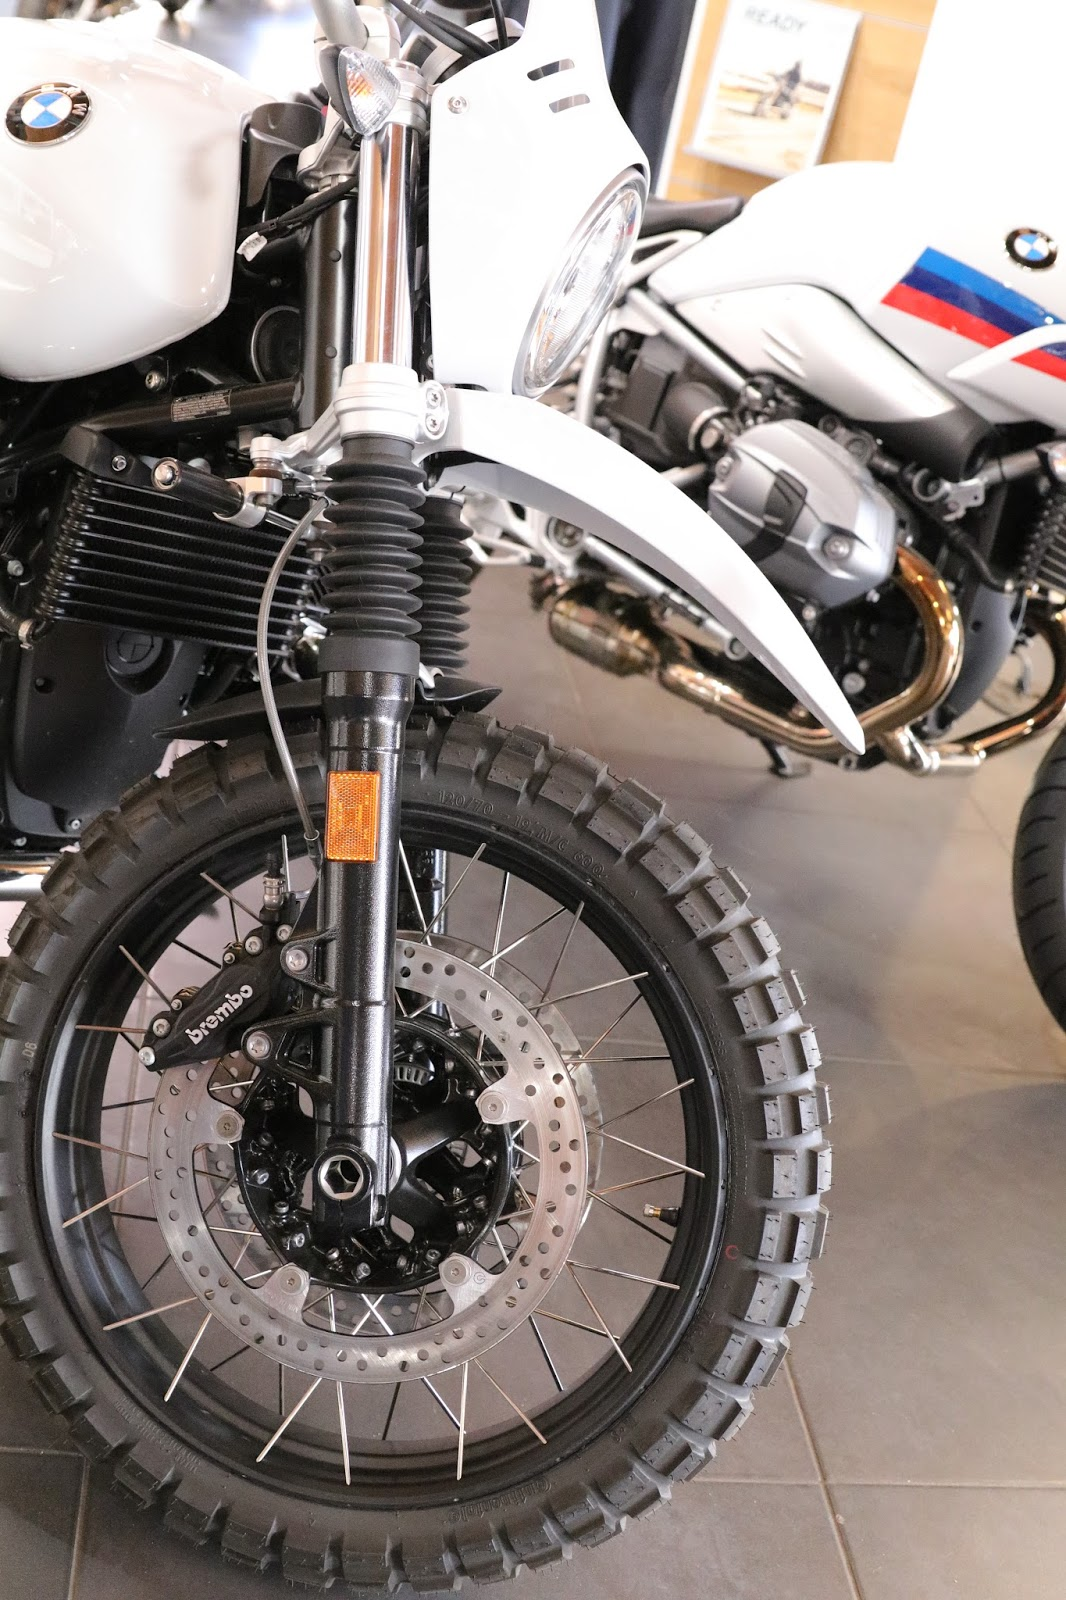 OldMotoDude: BMW RnineT Scrambler for sale at Foothills BMW